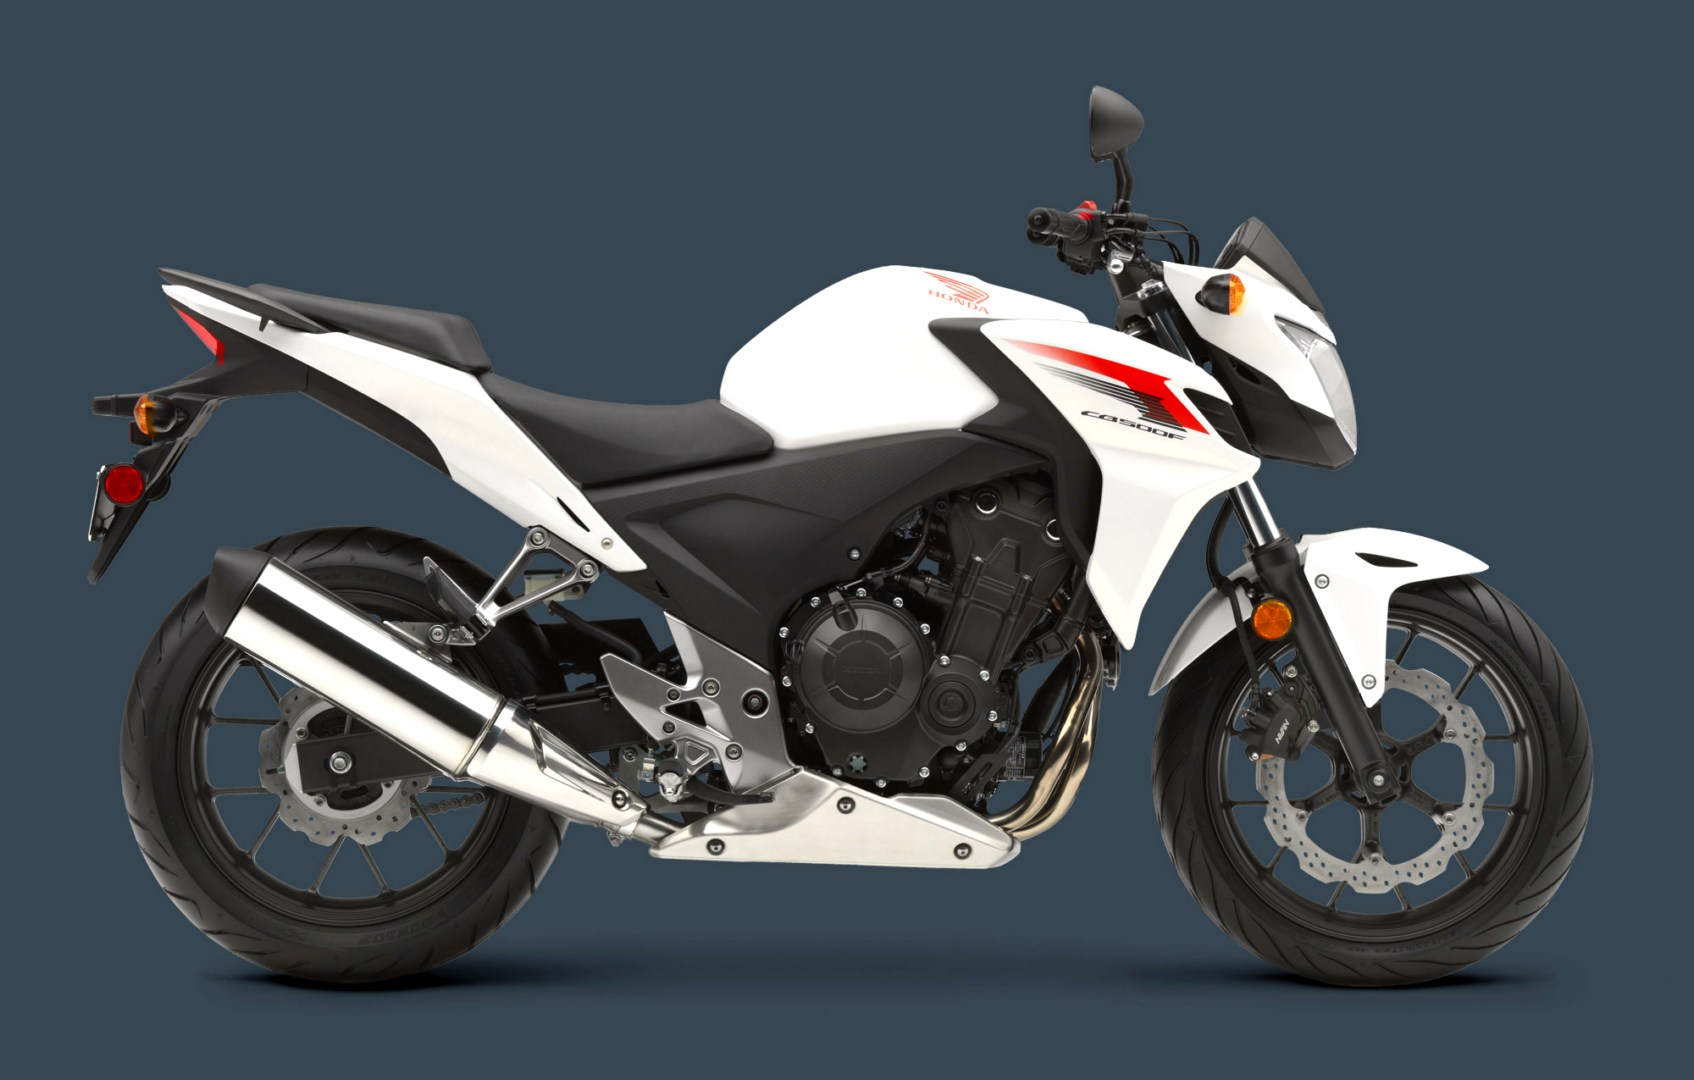 2013-honda-cb500f-detailed-official-price-revealed_2.jpg